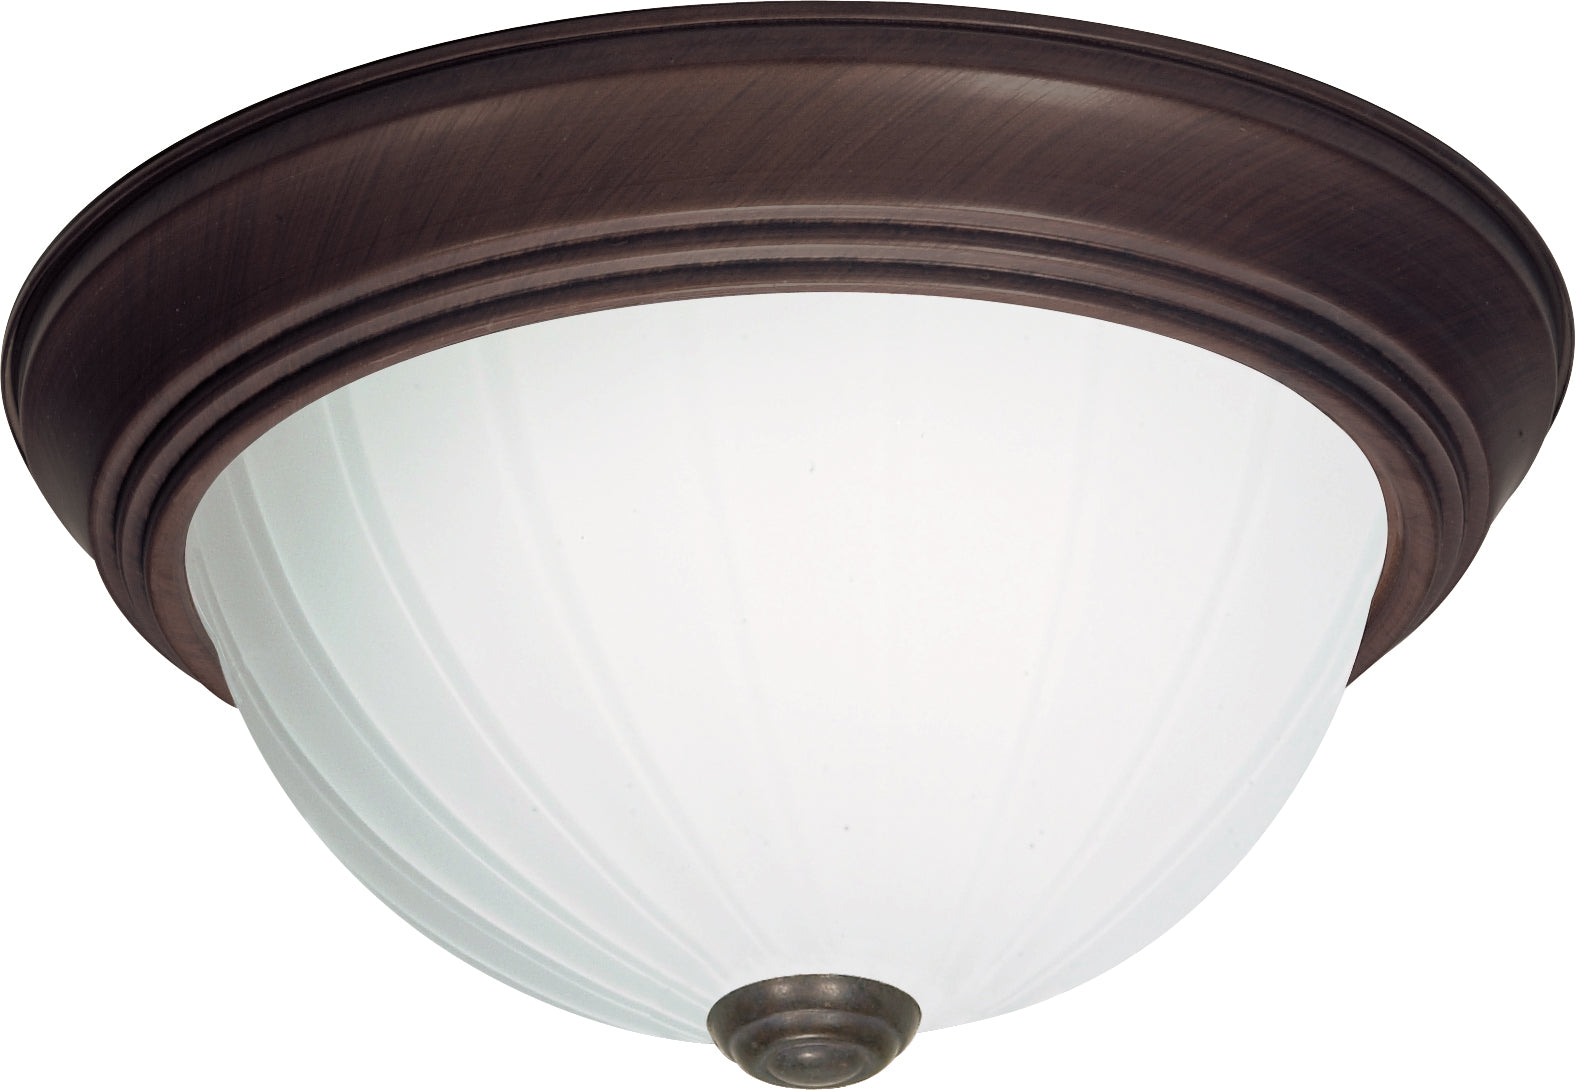 "2-Light 11"" Flush Mounted Close-to-Ceiling Light Fixture in Old Bronze Finish"